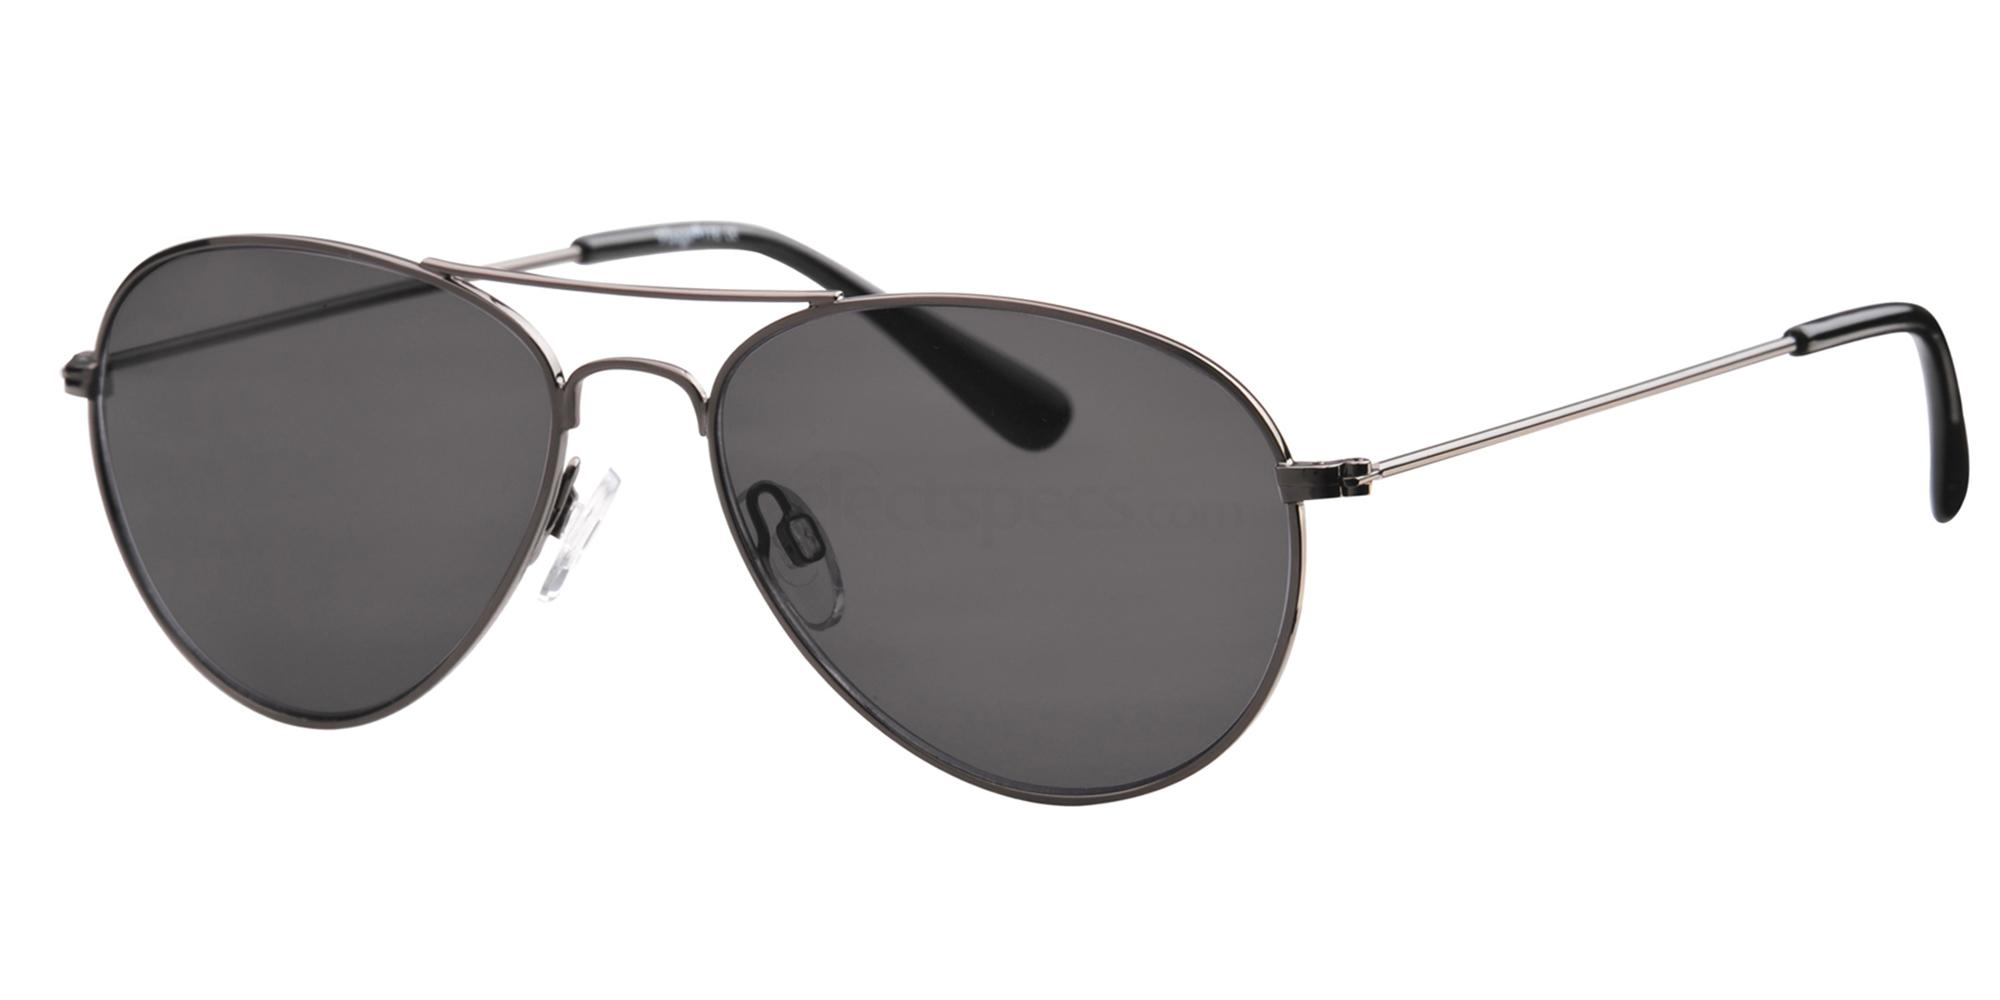 C01 VS176 Sunglasses, Visage